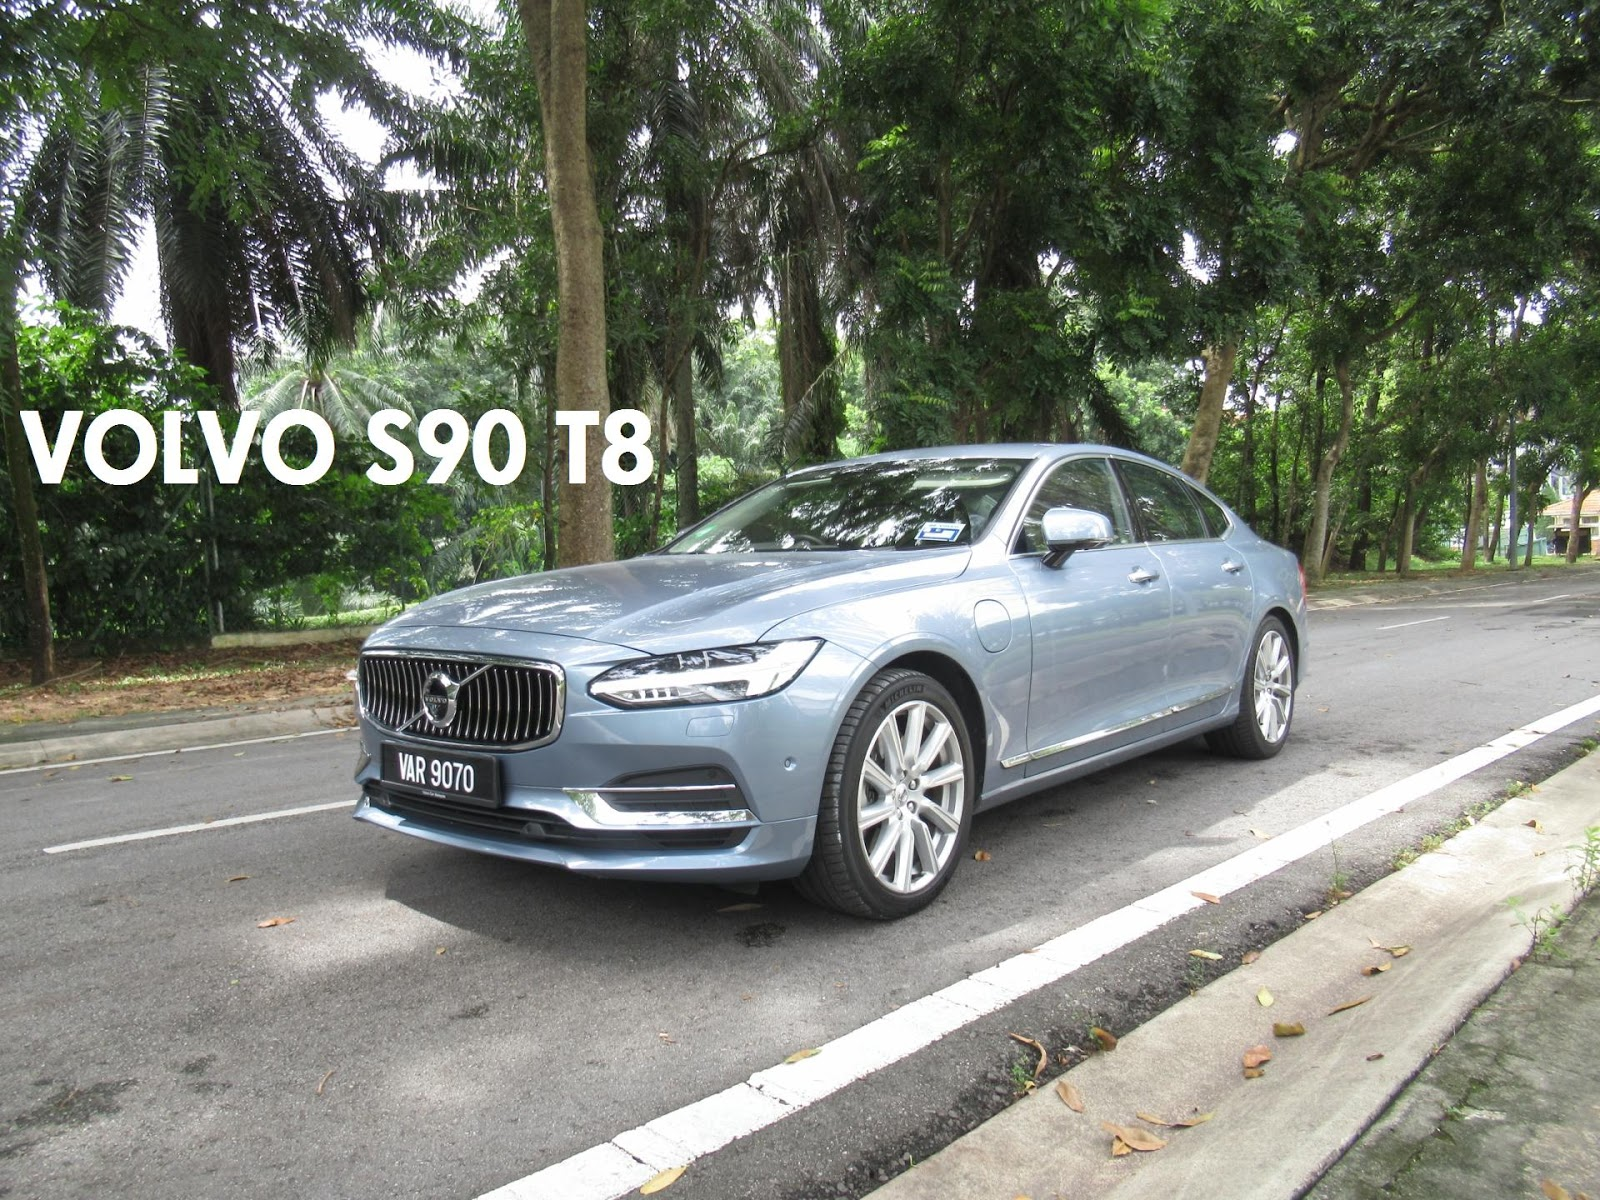 I Finally Managed To Put This Video Together After Quite A While Is The About Me Testing 2018 Volvo S90 T8 Twin Engine Inscription Plus